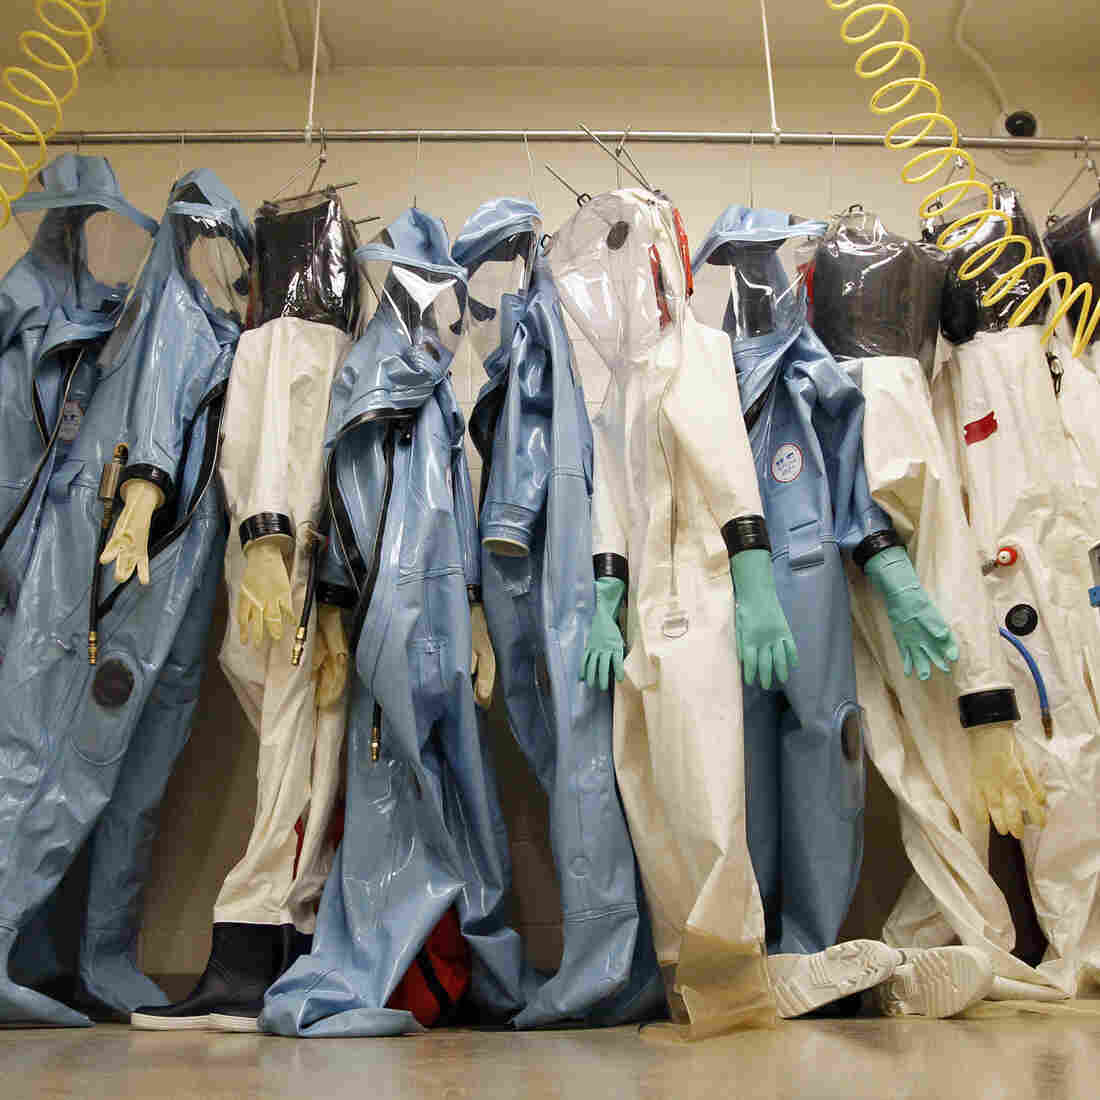 Biohazard suits used to handle dangerous microbes hang in a laboratory at the U.S. Army Medical Research Institute of Infectious Diseases in Fort Detrick, Md.